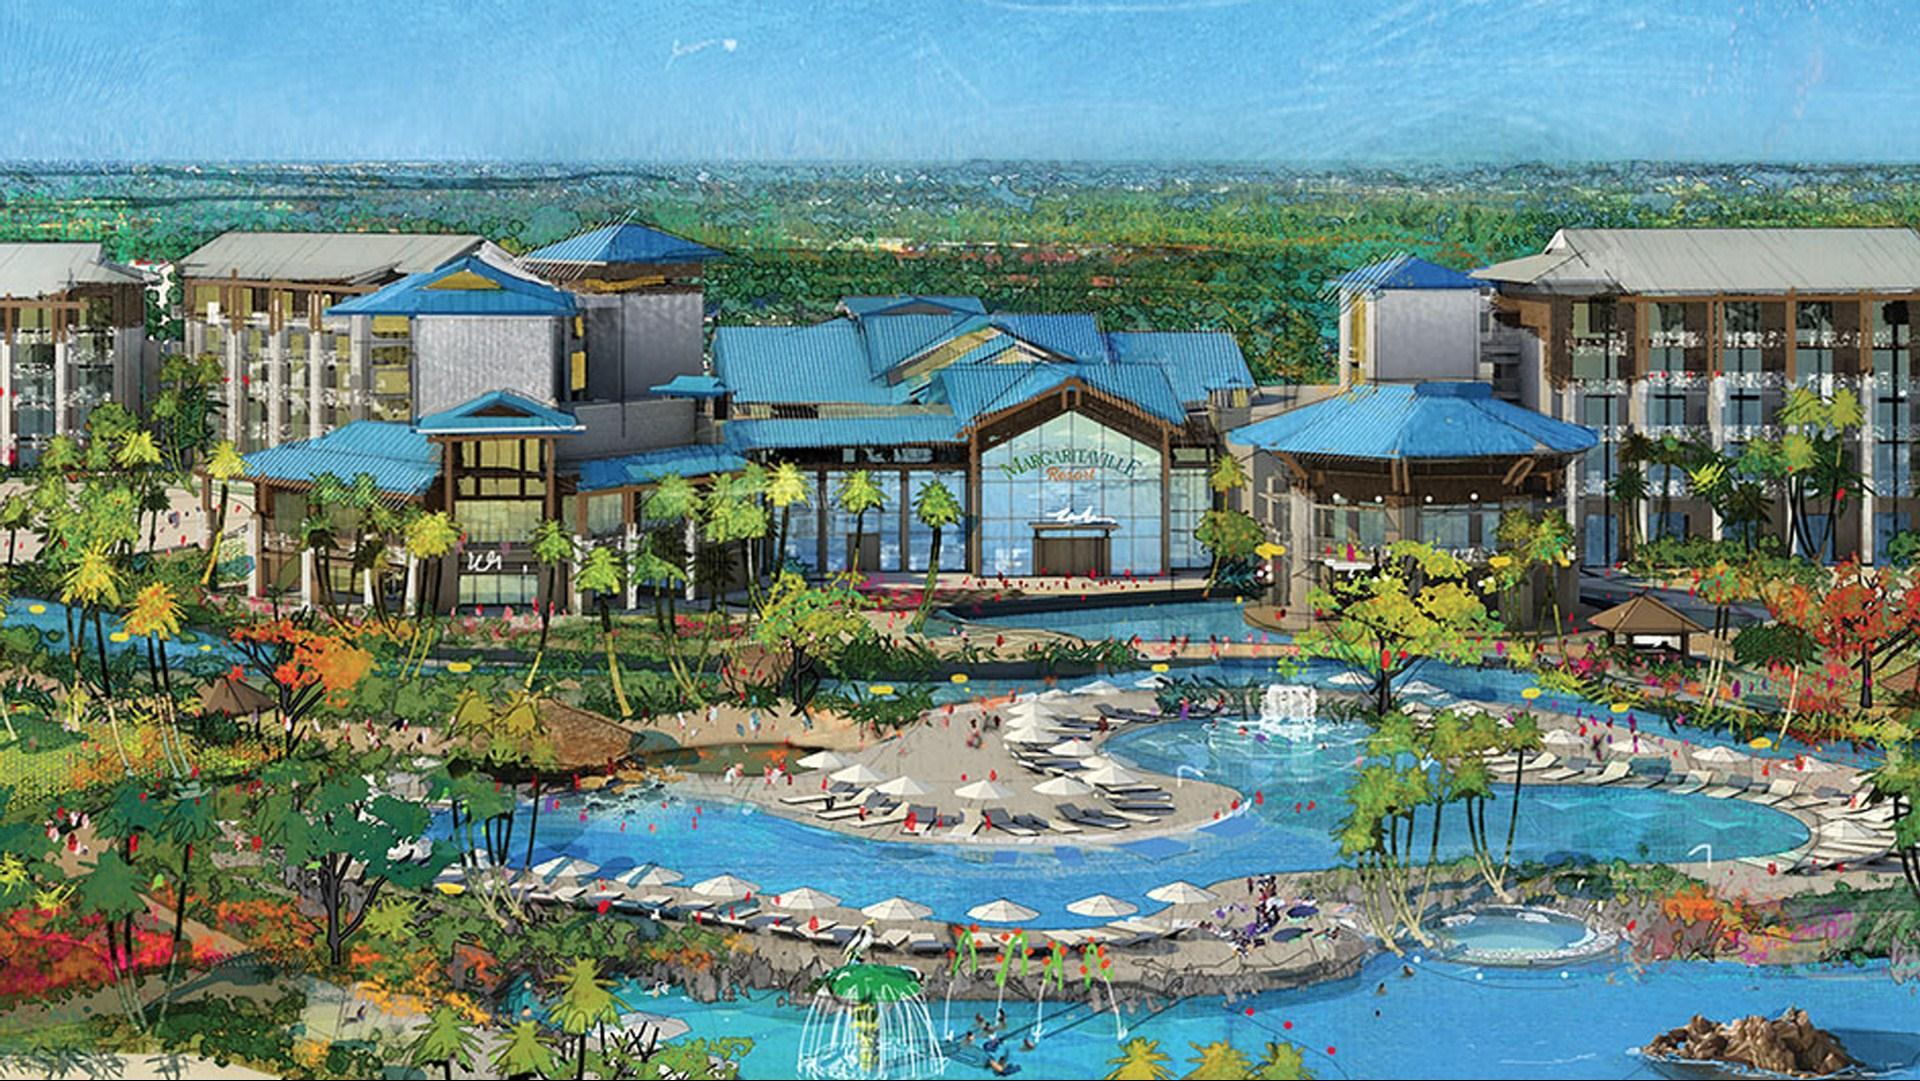 Meetings and events at Margaritaville Resort Orlando